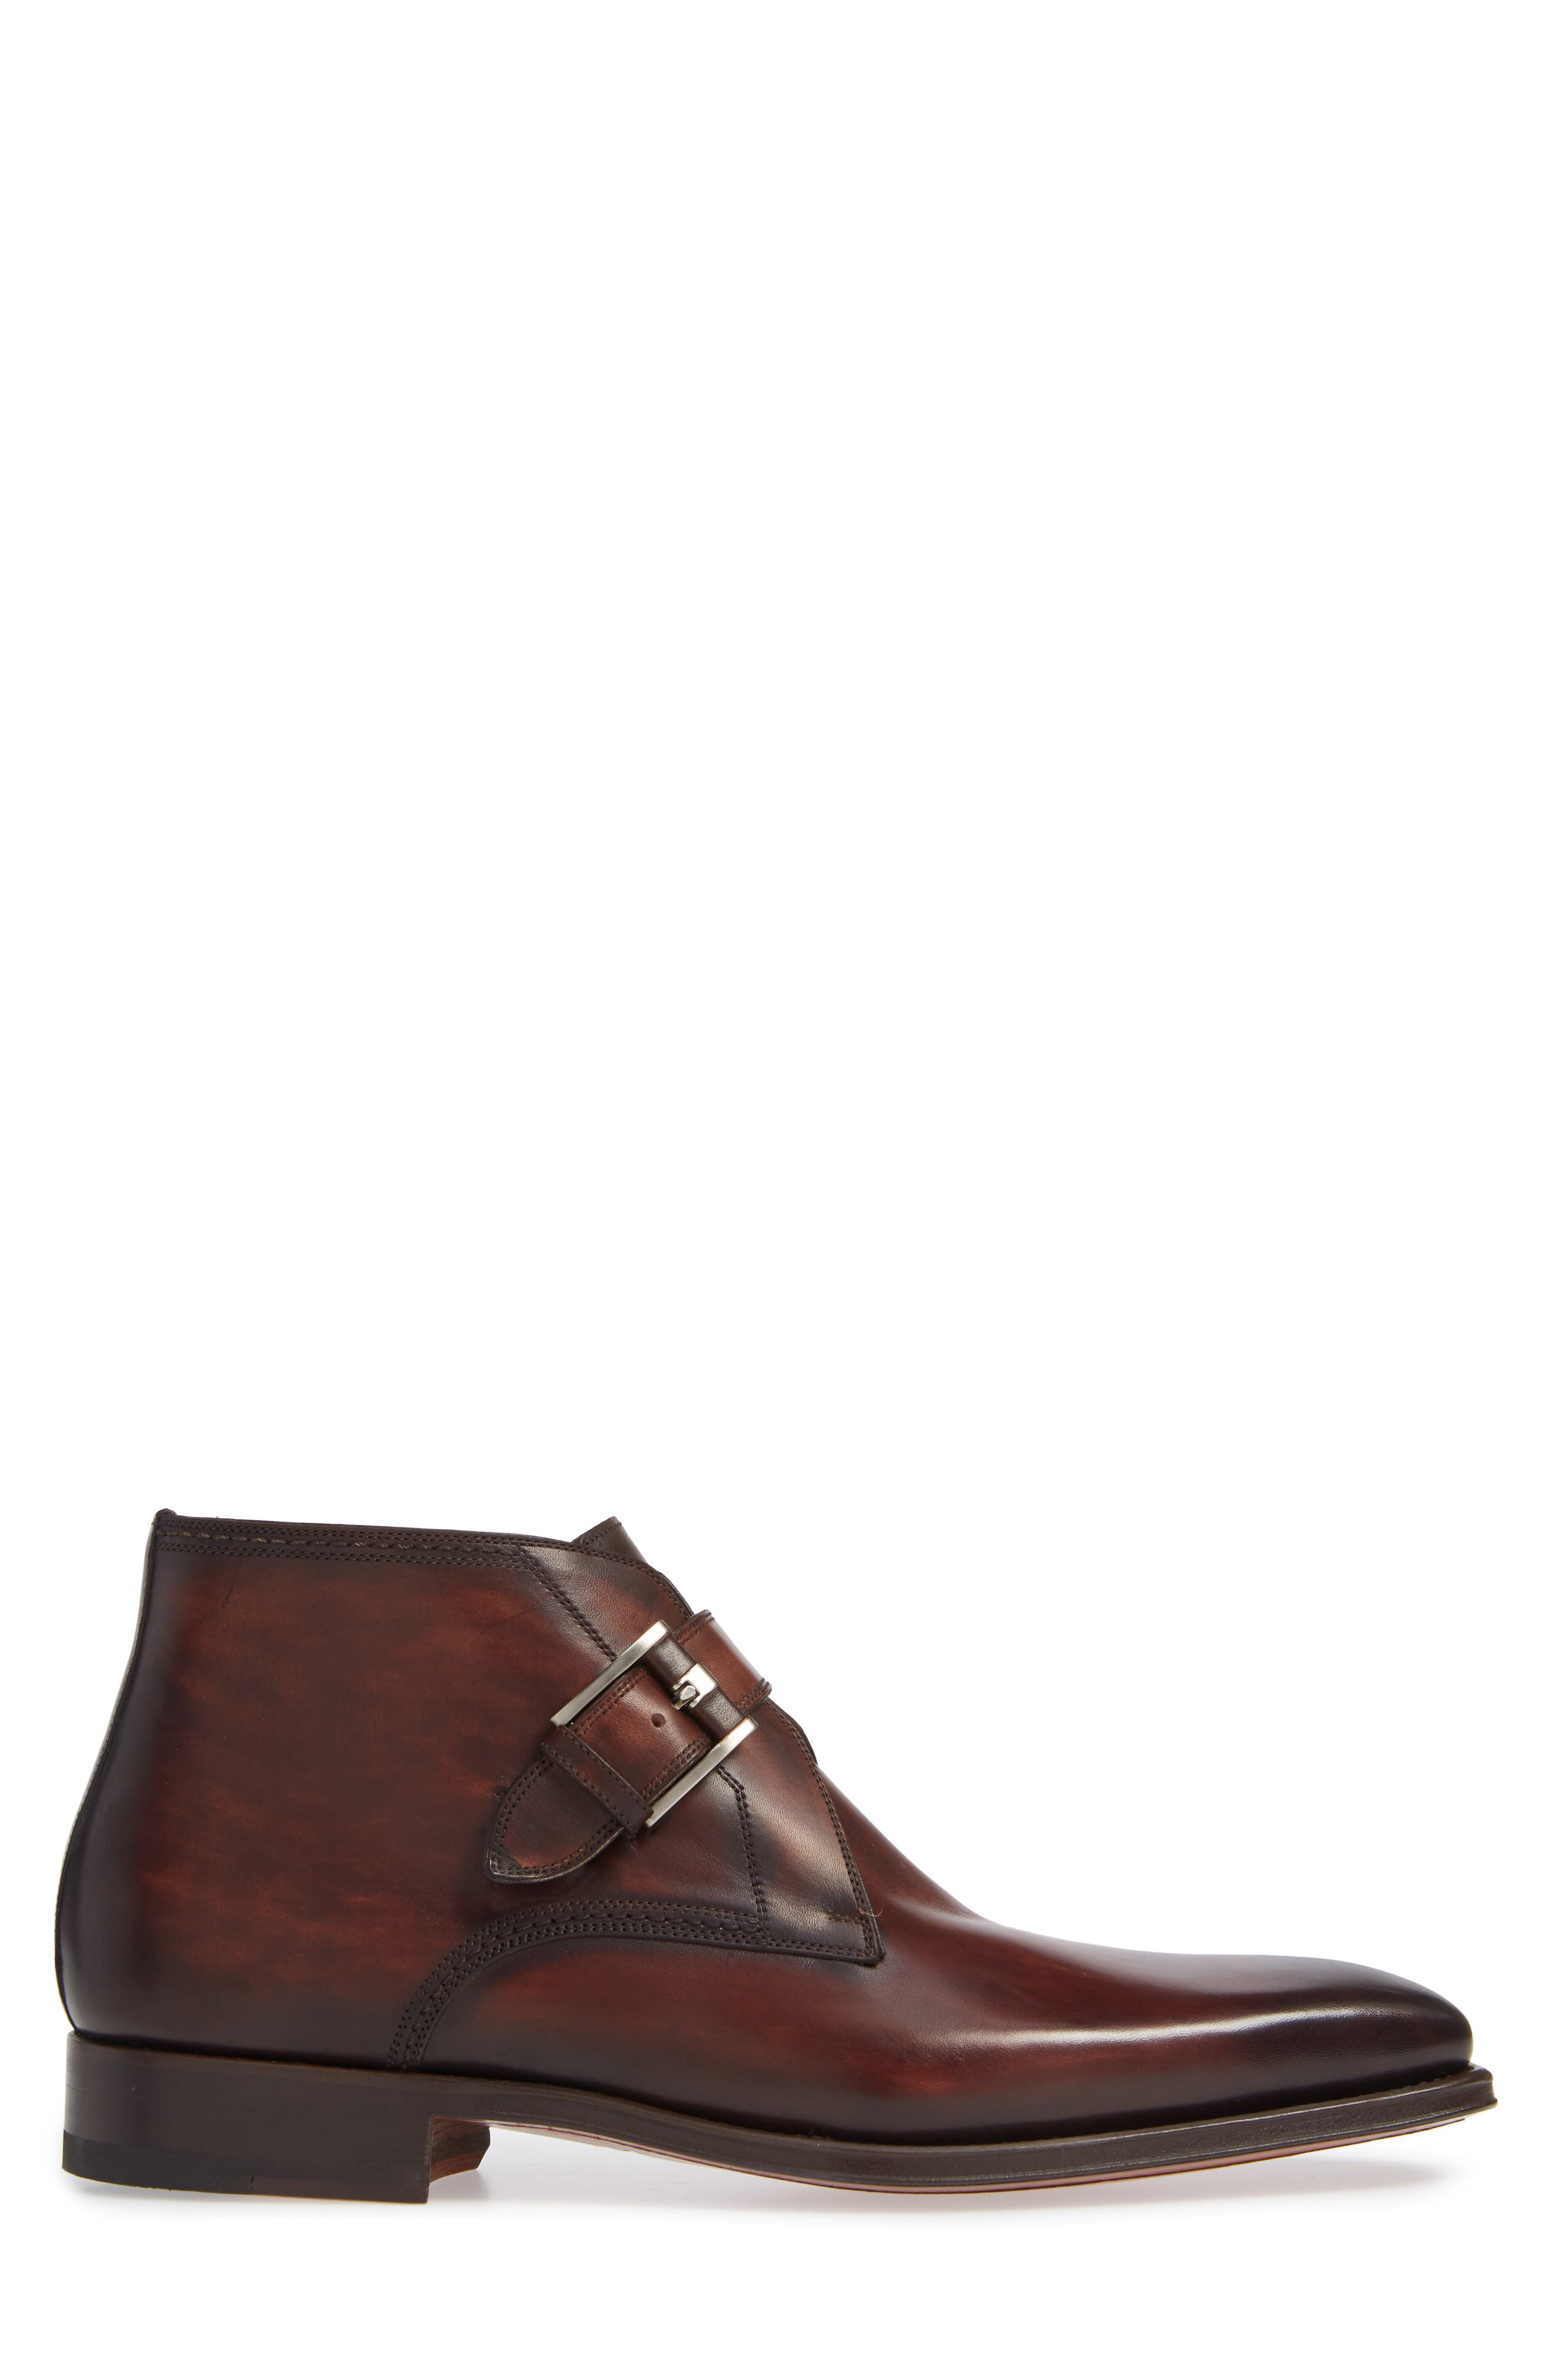 MAGNANNI,                             Luka Monk Strap Boot,                             Alternate thumbnail 3, color,                             MID BROWN LEATHER